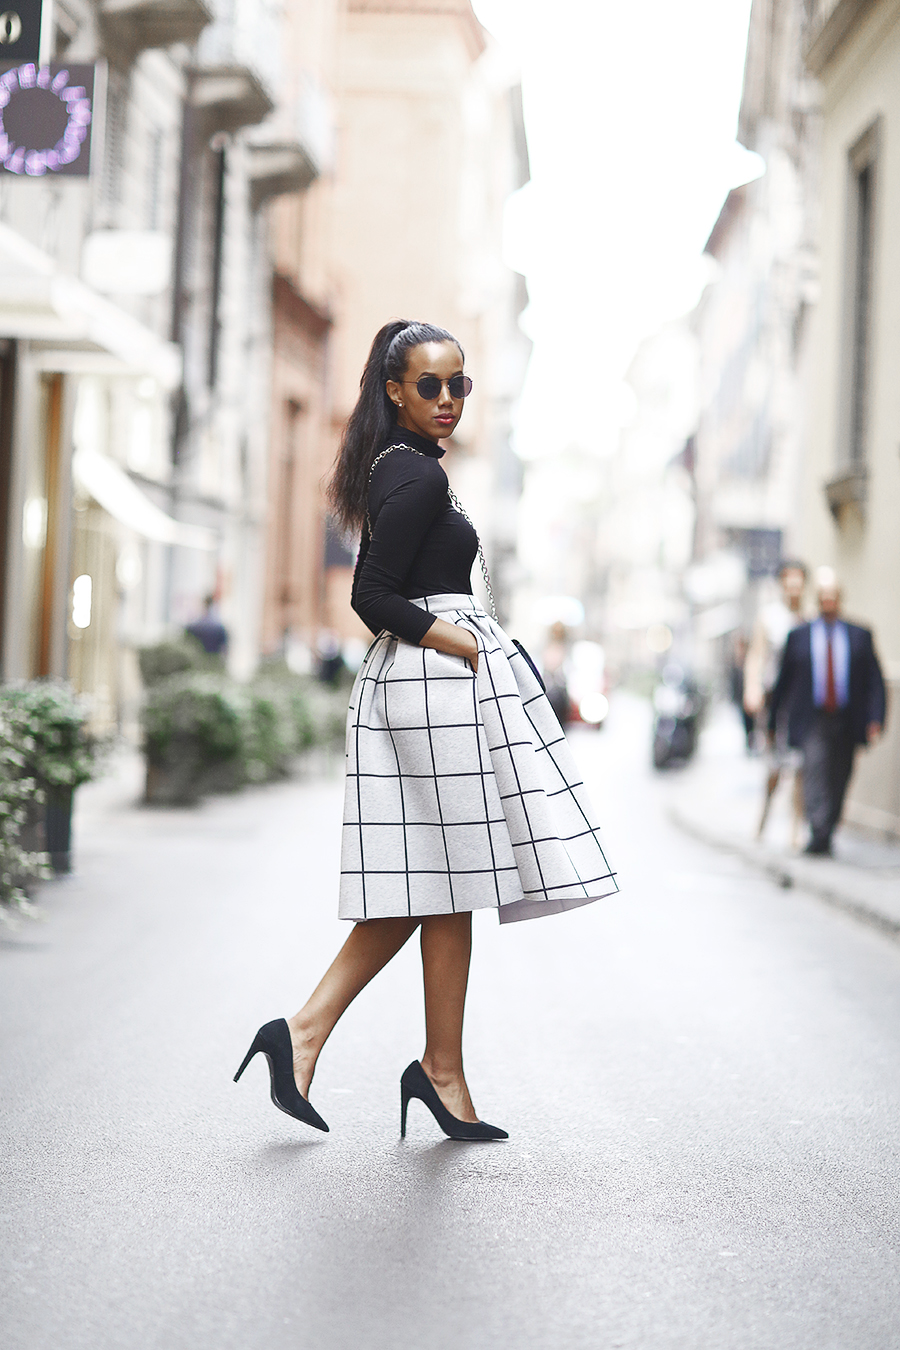 Josefin Dahlberg wears a statement patterned skirt with a plain black roll neck top and heels. Skirt/Shoes: Topshop, Top H&M, Bag: Mango, Sunglasses: Åhlens.